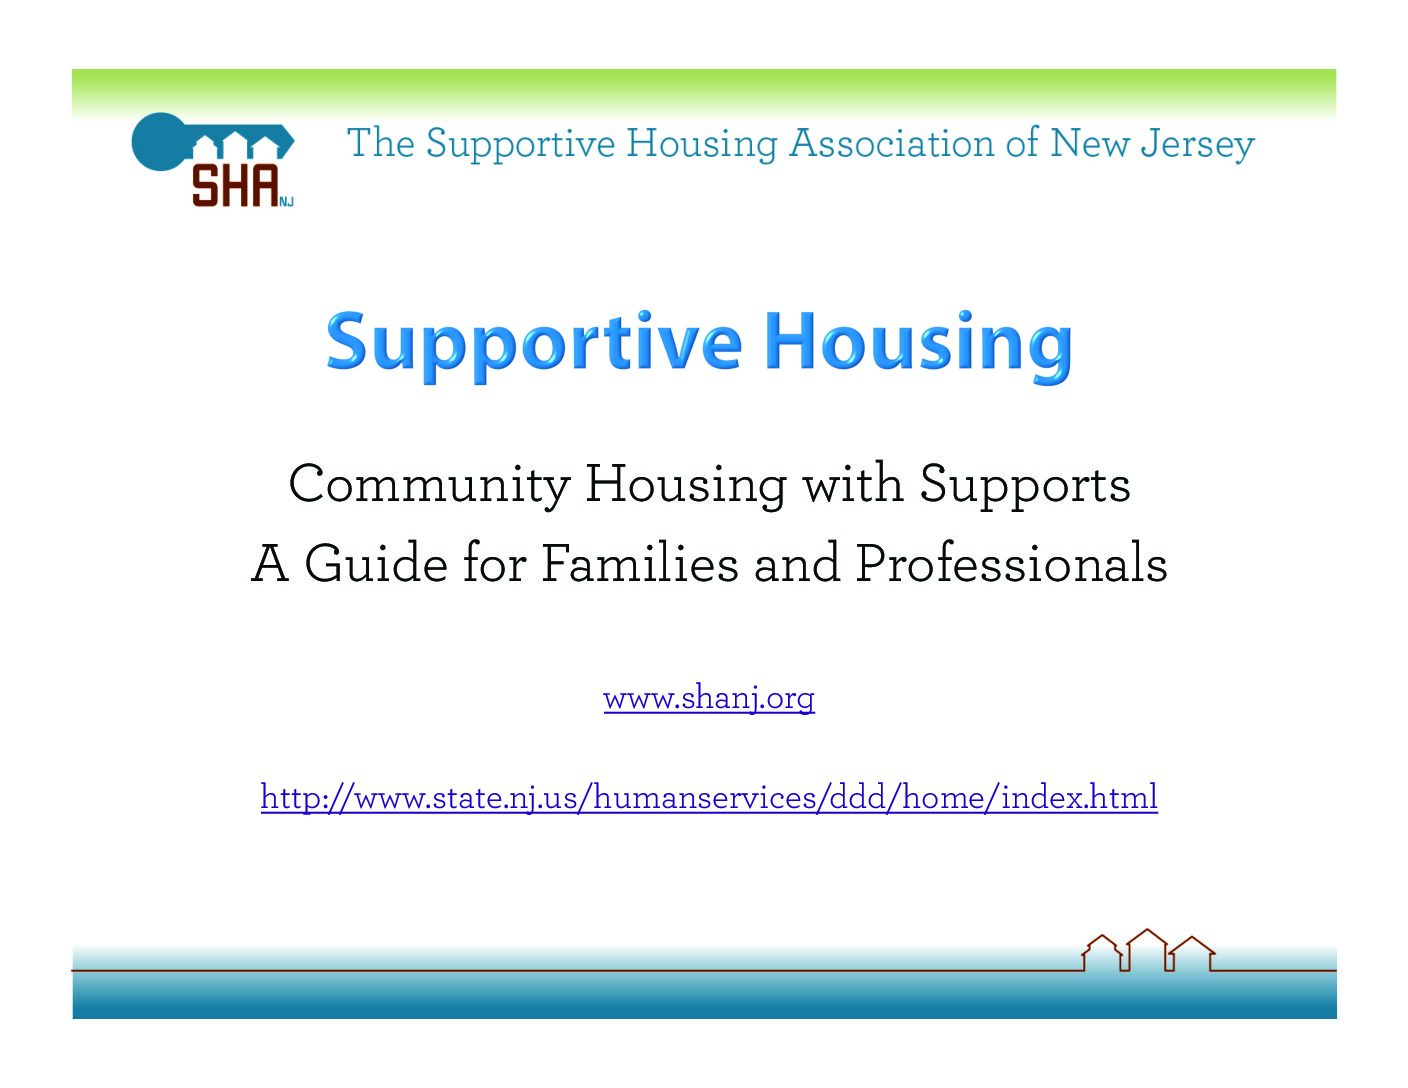 Community Housing with Supports: A Guide for Families and Professionals